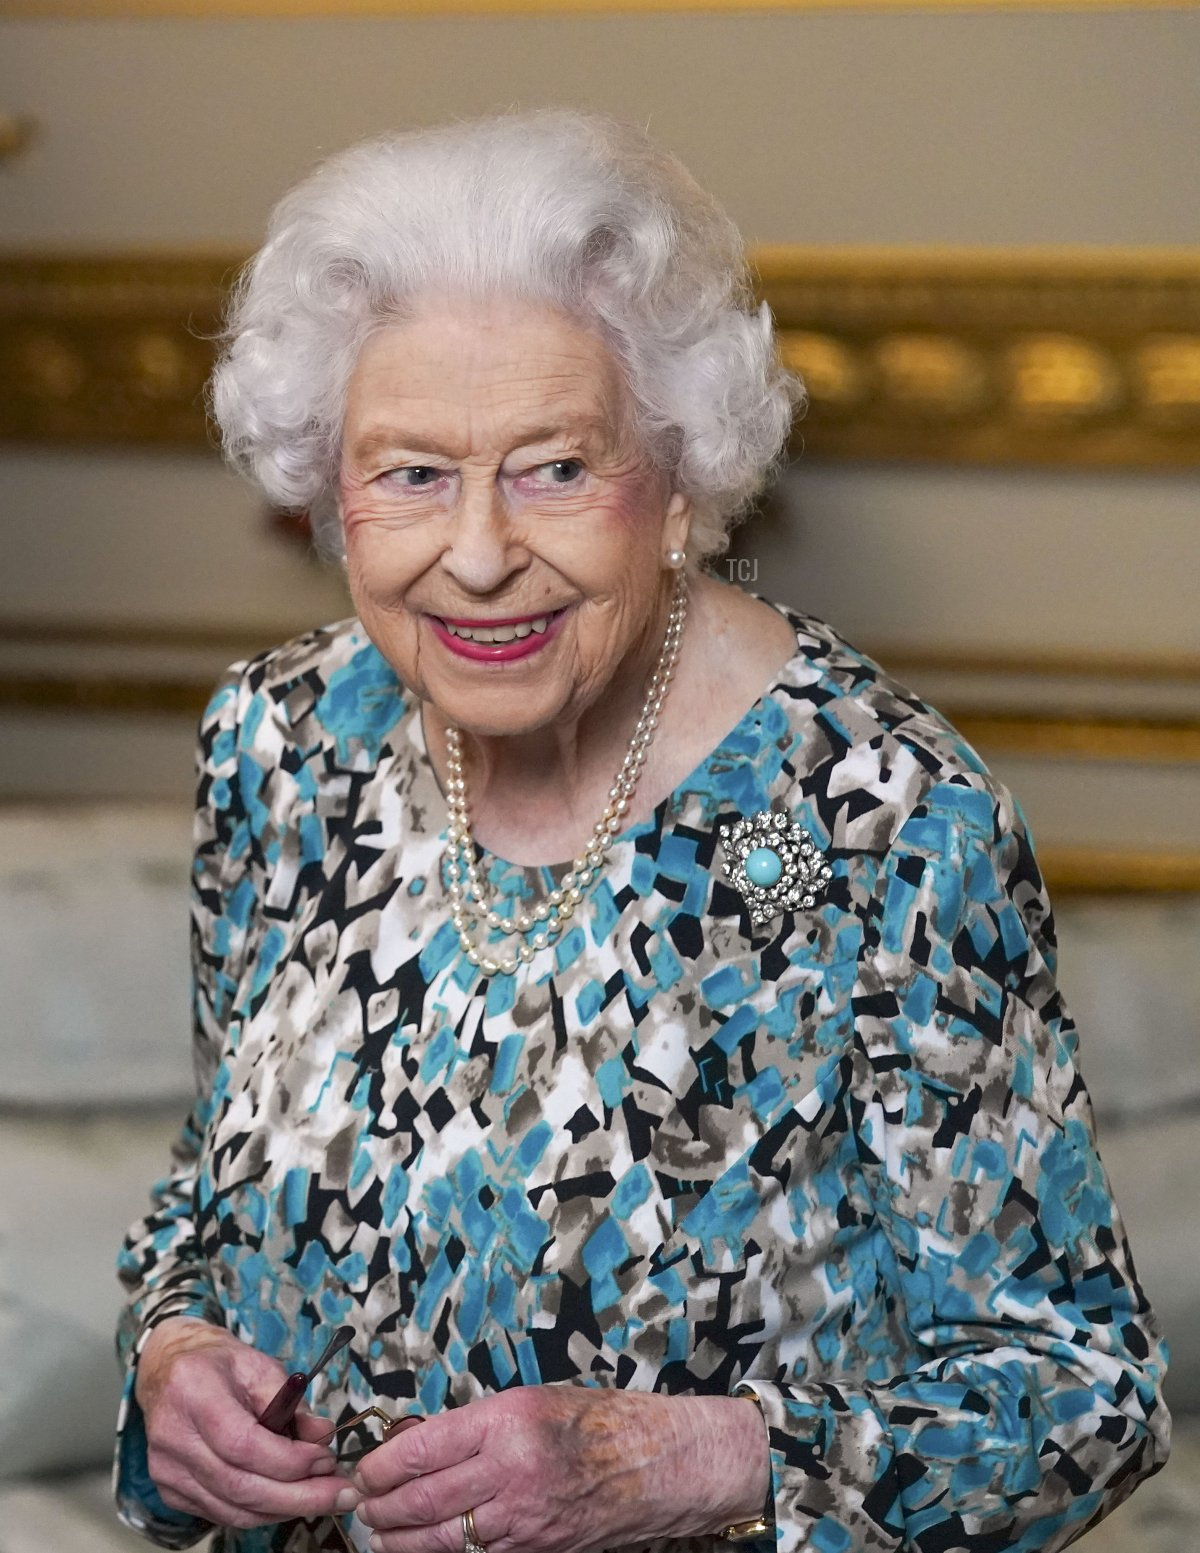 Queen Elizabeth II looks at the Birmingham 2022 Commonwealth Games Baton during the Baton Relay for Birmingham 2022, the XXII Commonwealth Games at Buckingham Palace on October 7, 2021 in London, England